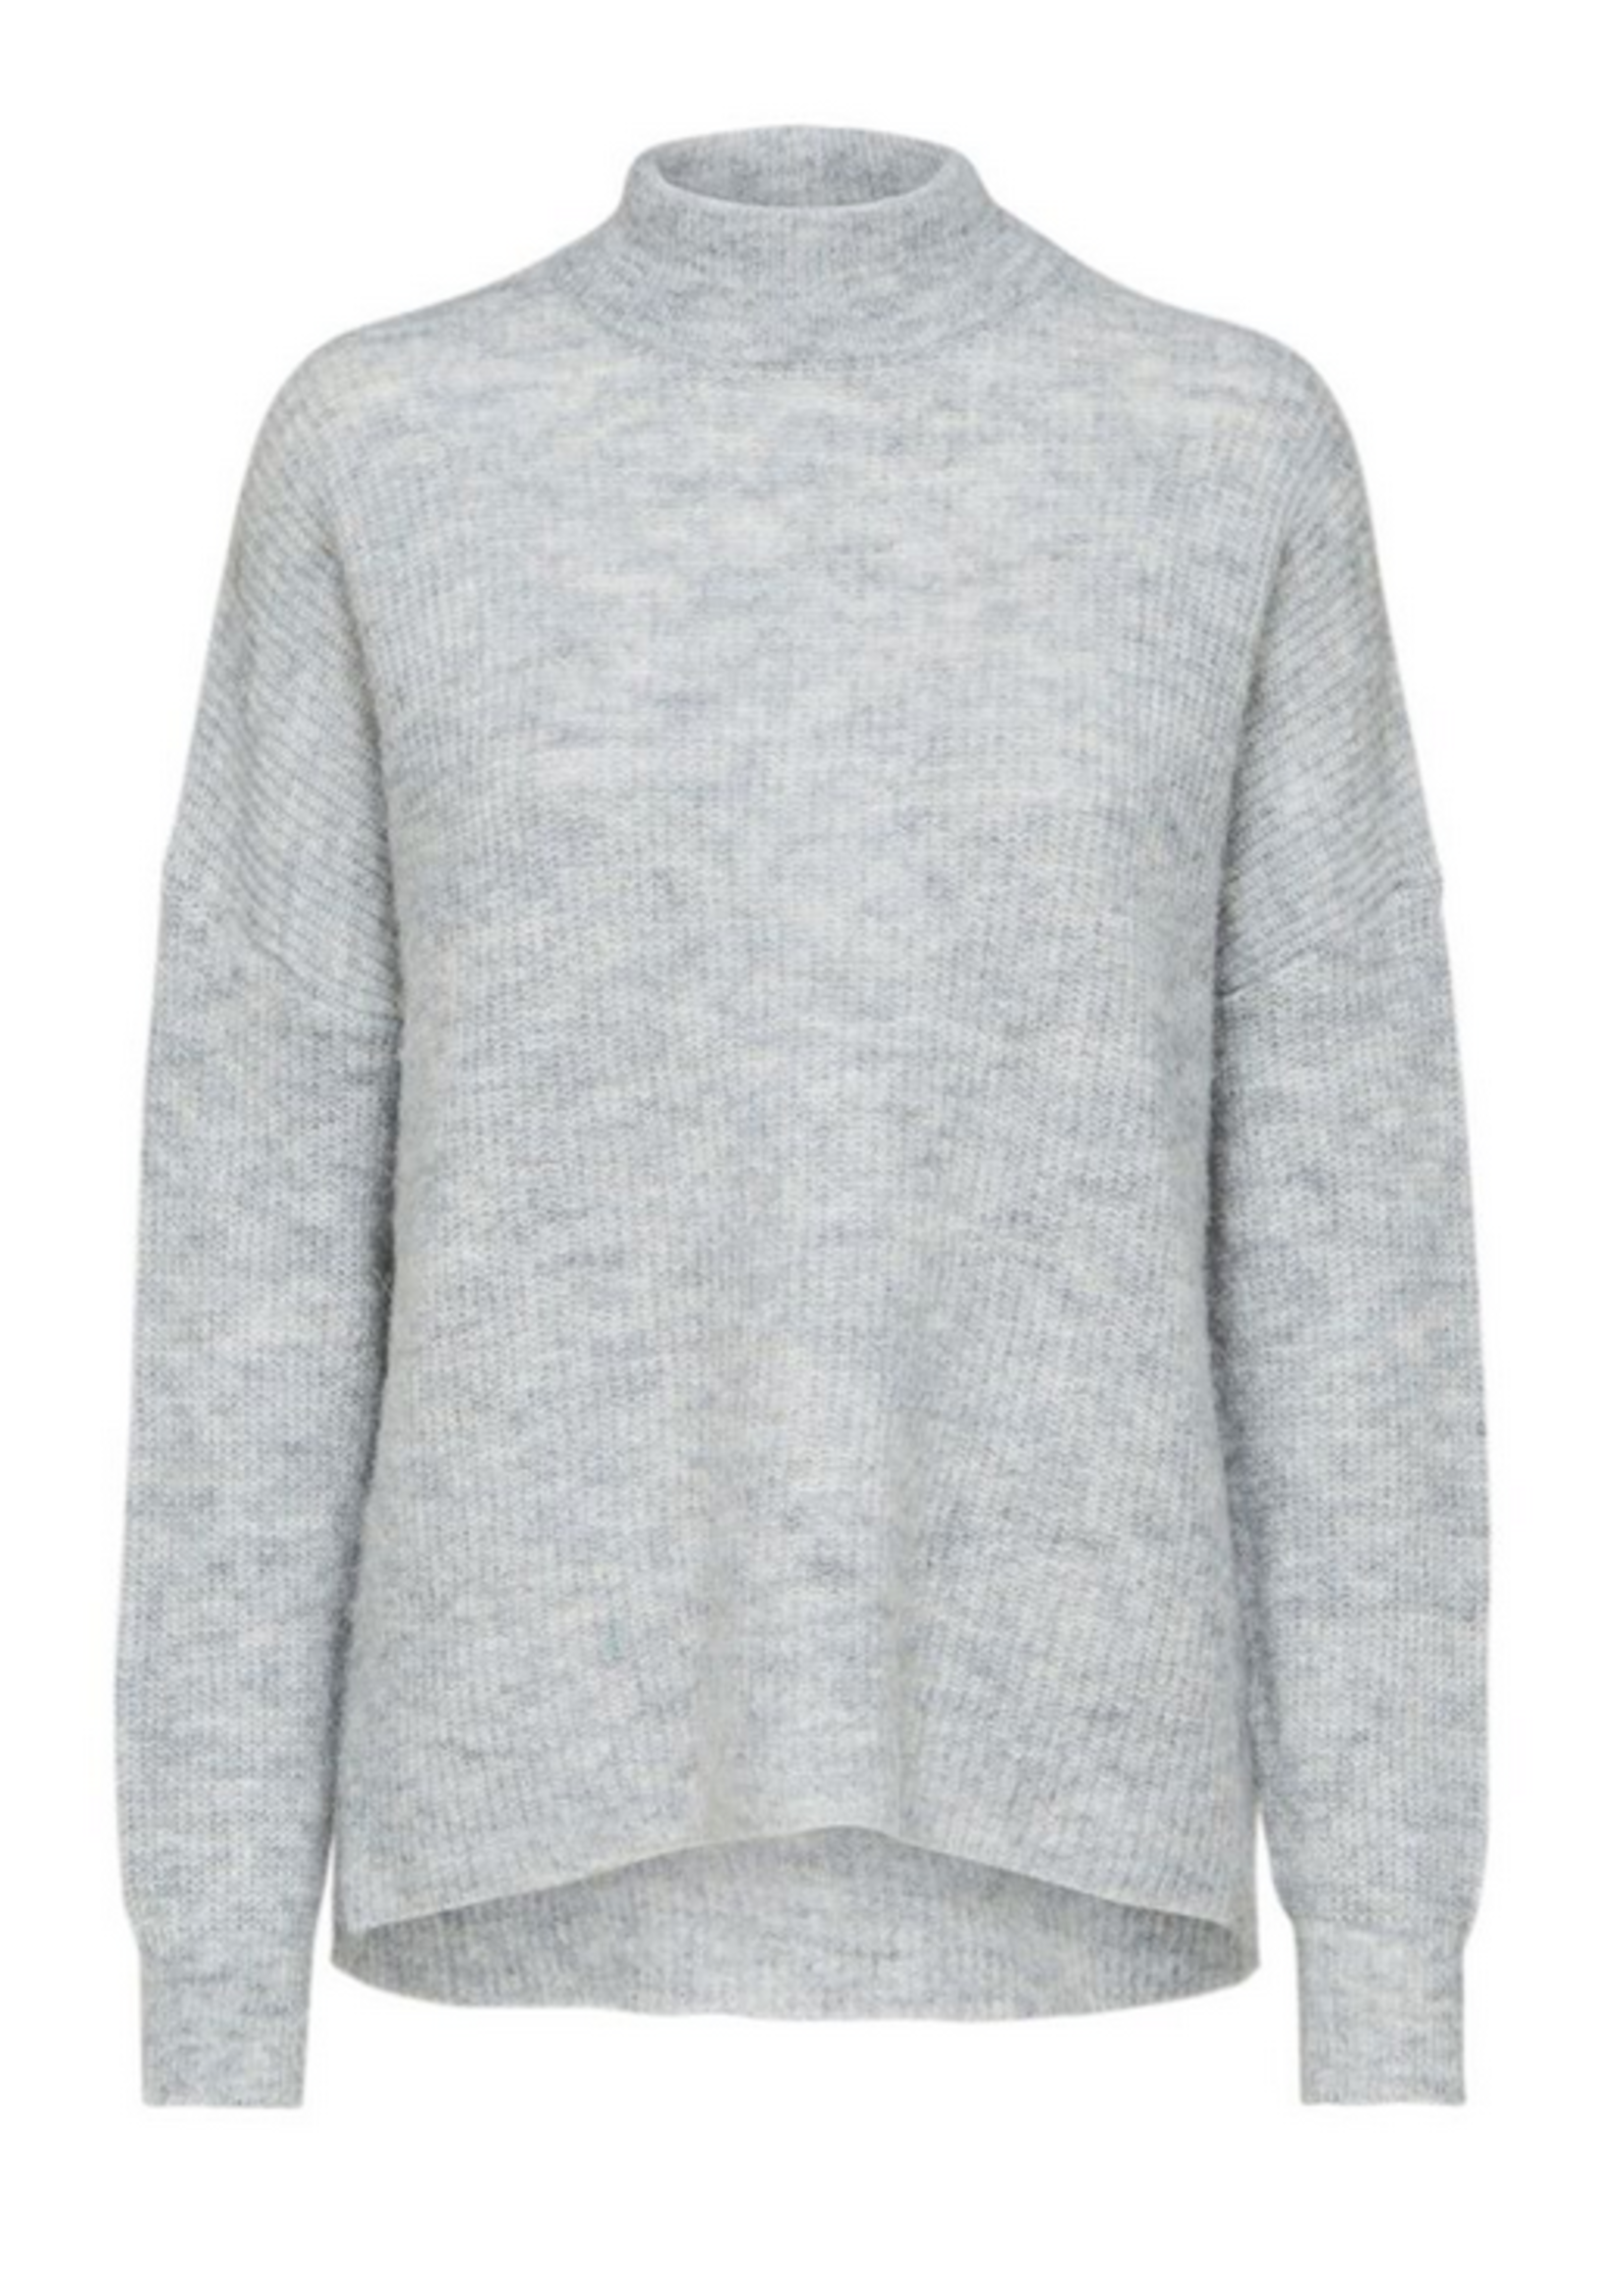 Selected Femme Lulu Enica ls knit o-neck